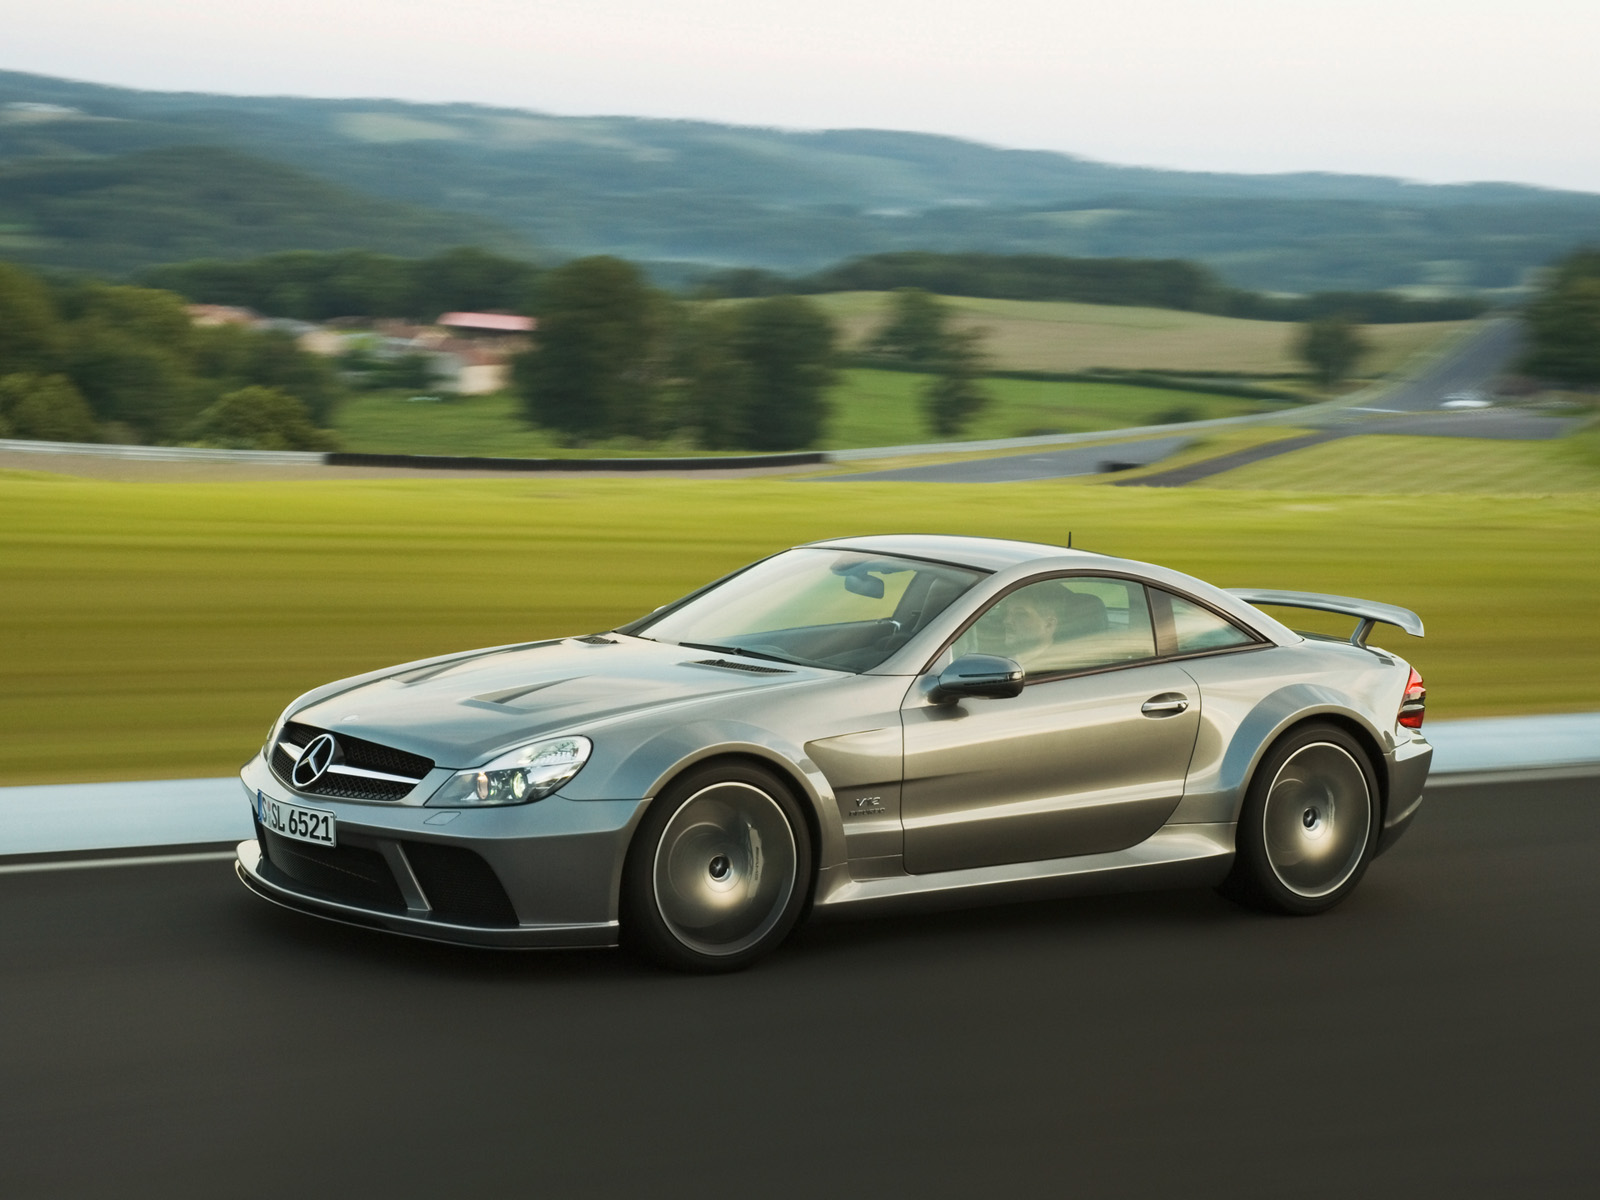 mercedes-benz sl 65 amg black series-pic. 1